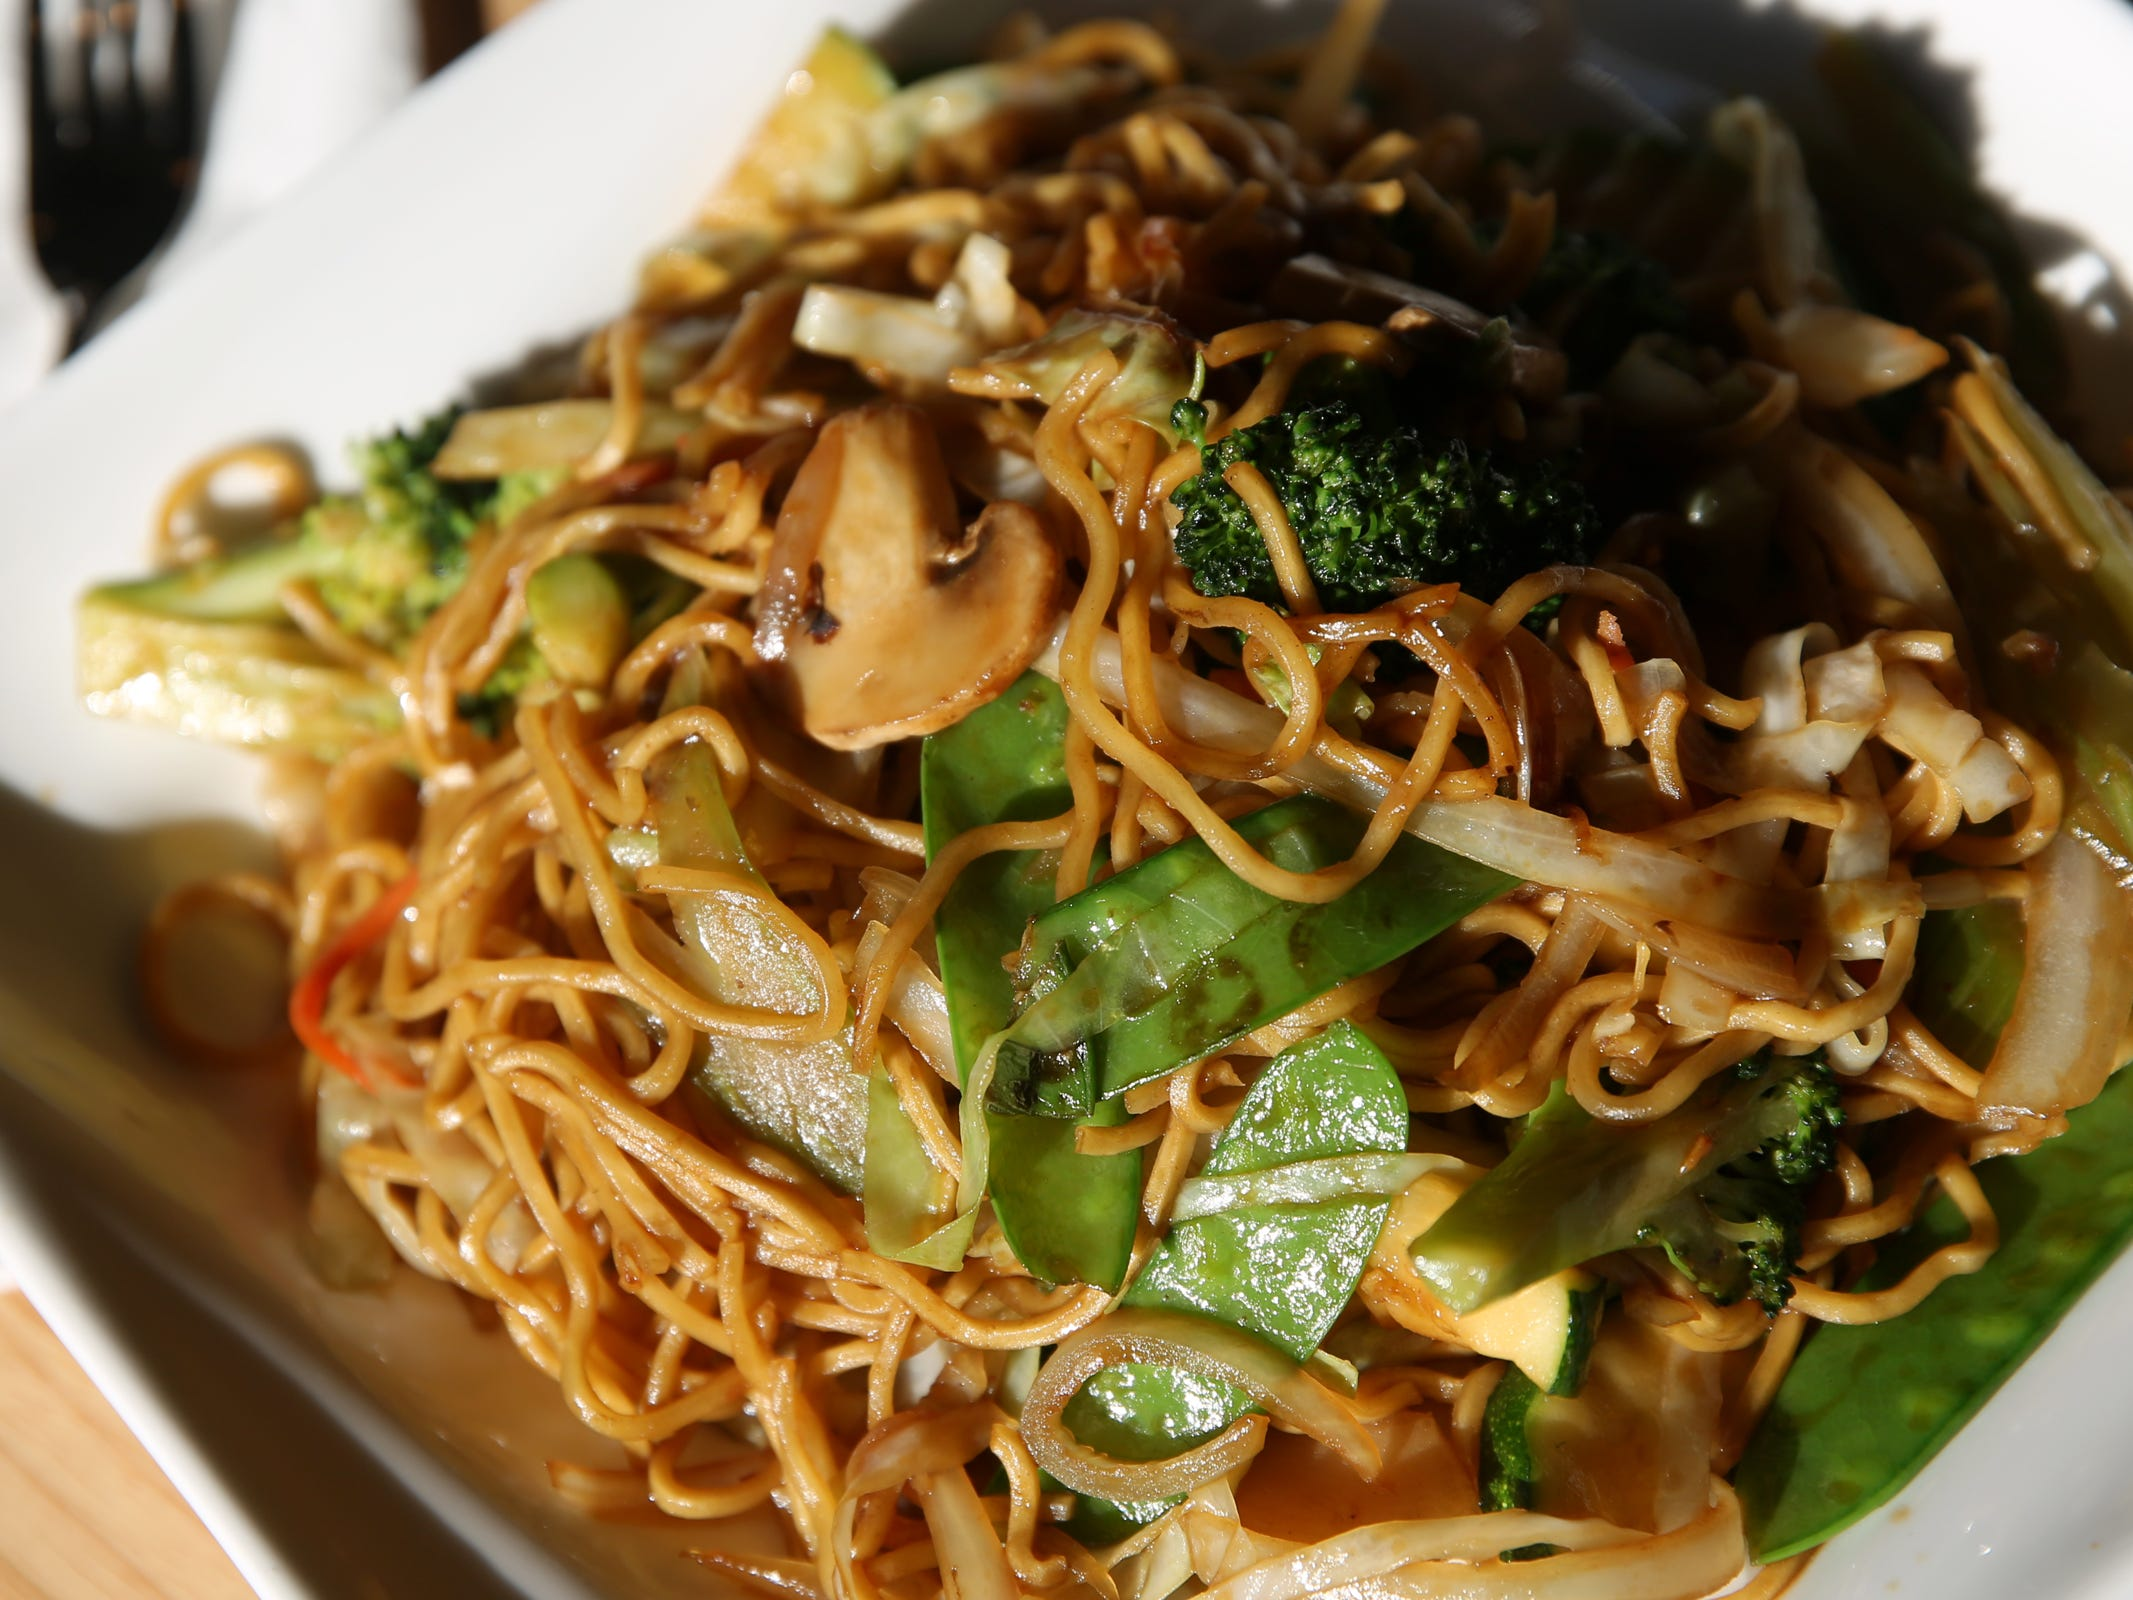 Vegetable lo mein at Chen's Family Dish in Salem on Thursday, Jan. 31, 2019.